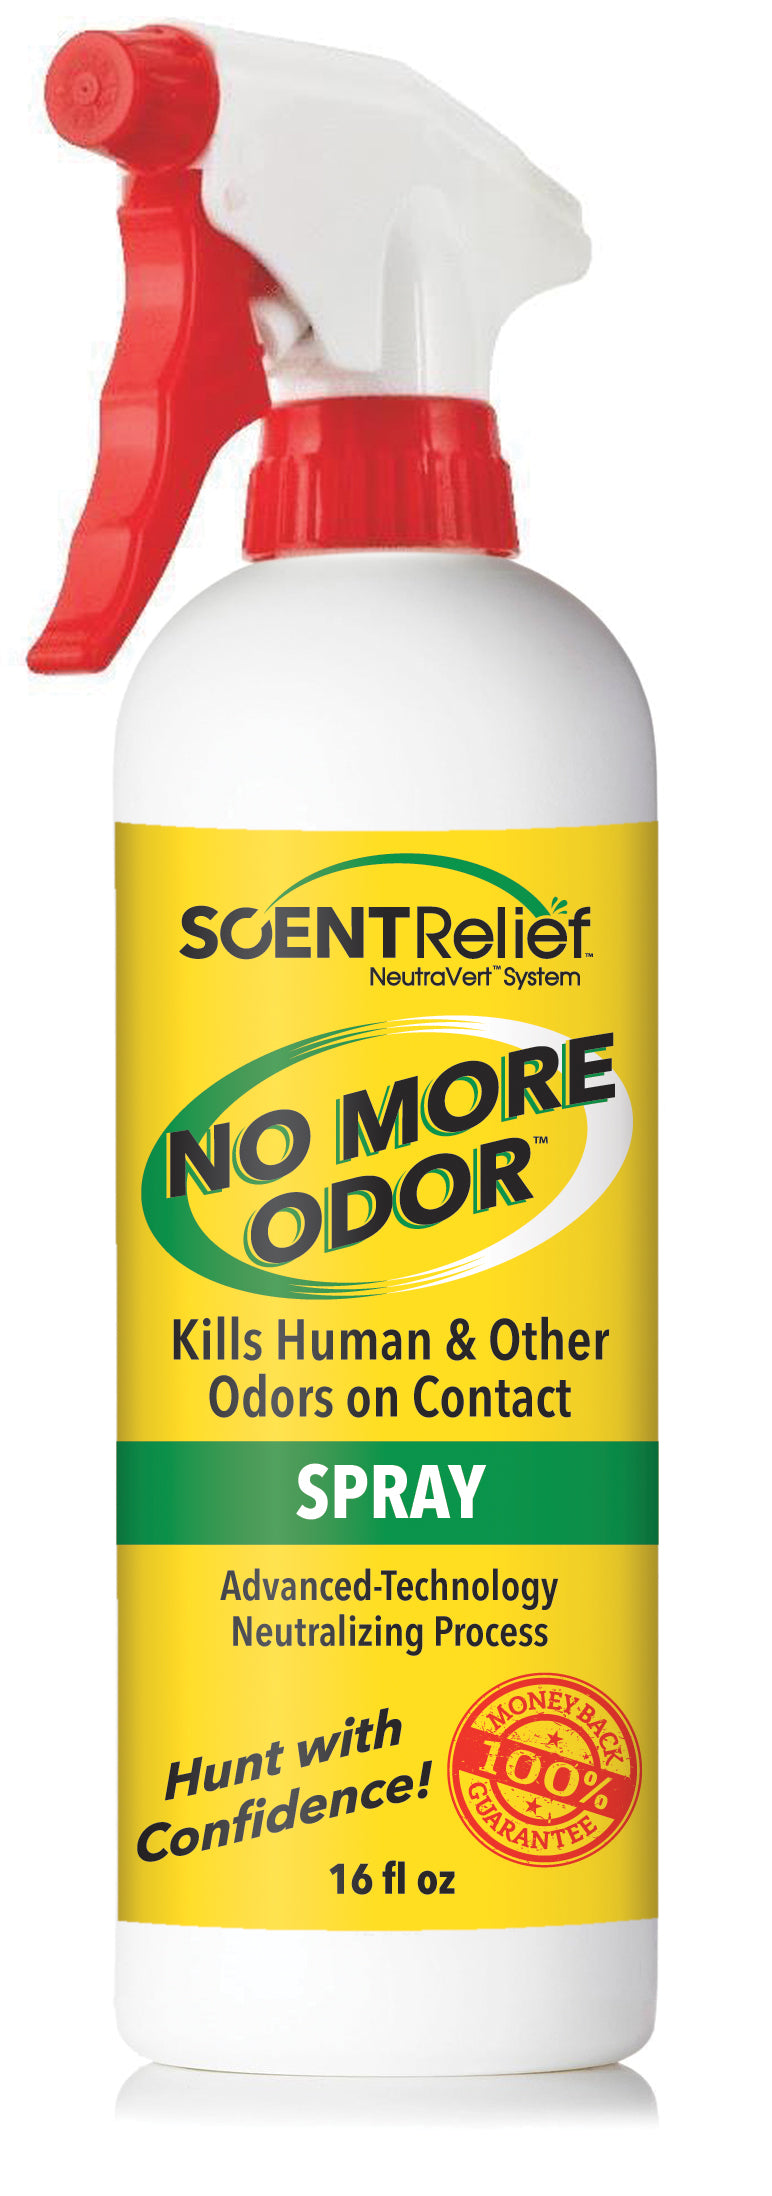 Scent Relief Odor Elimination Spray